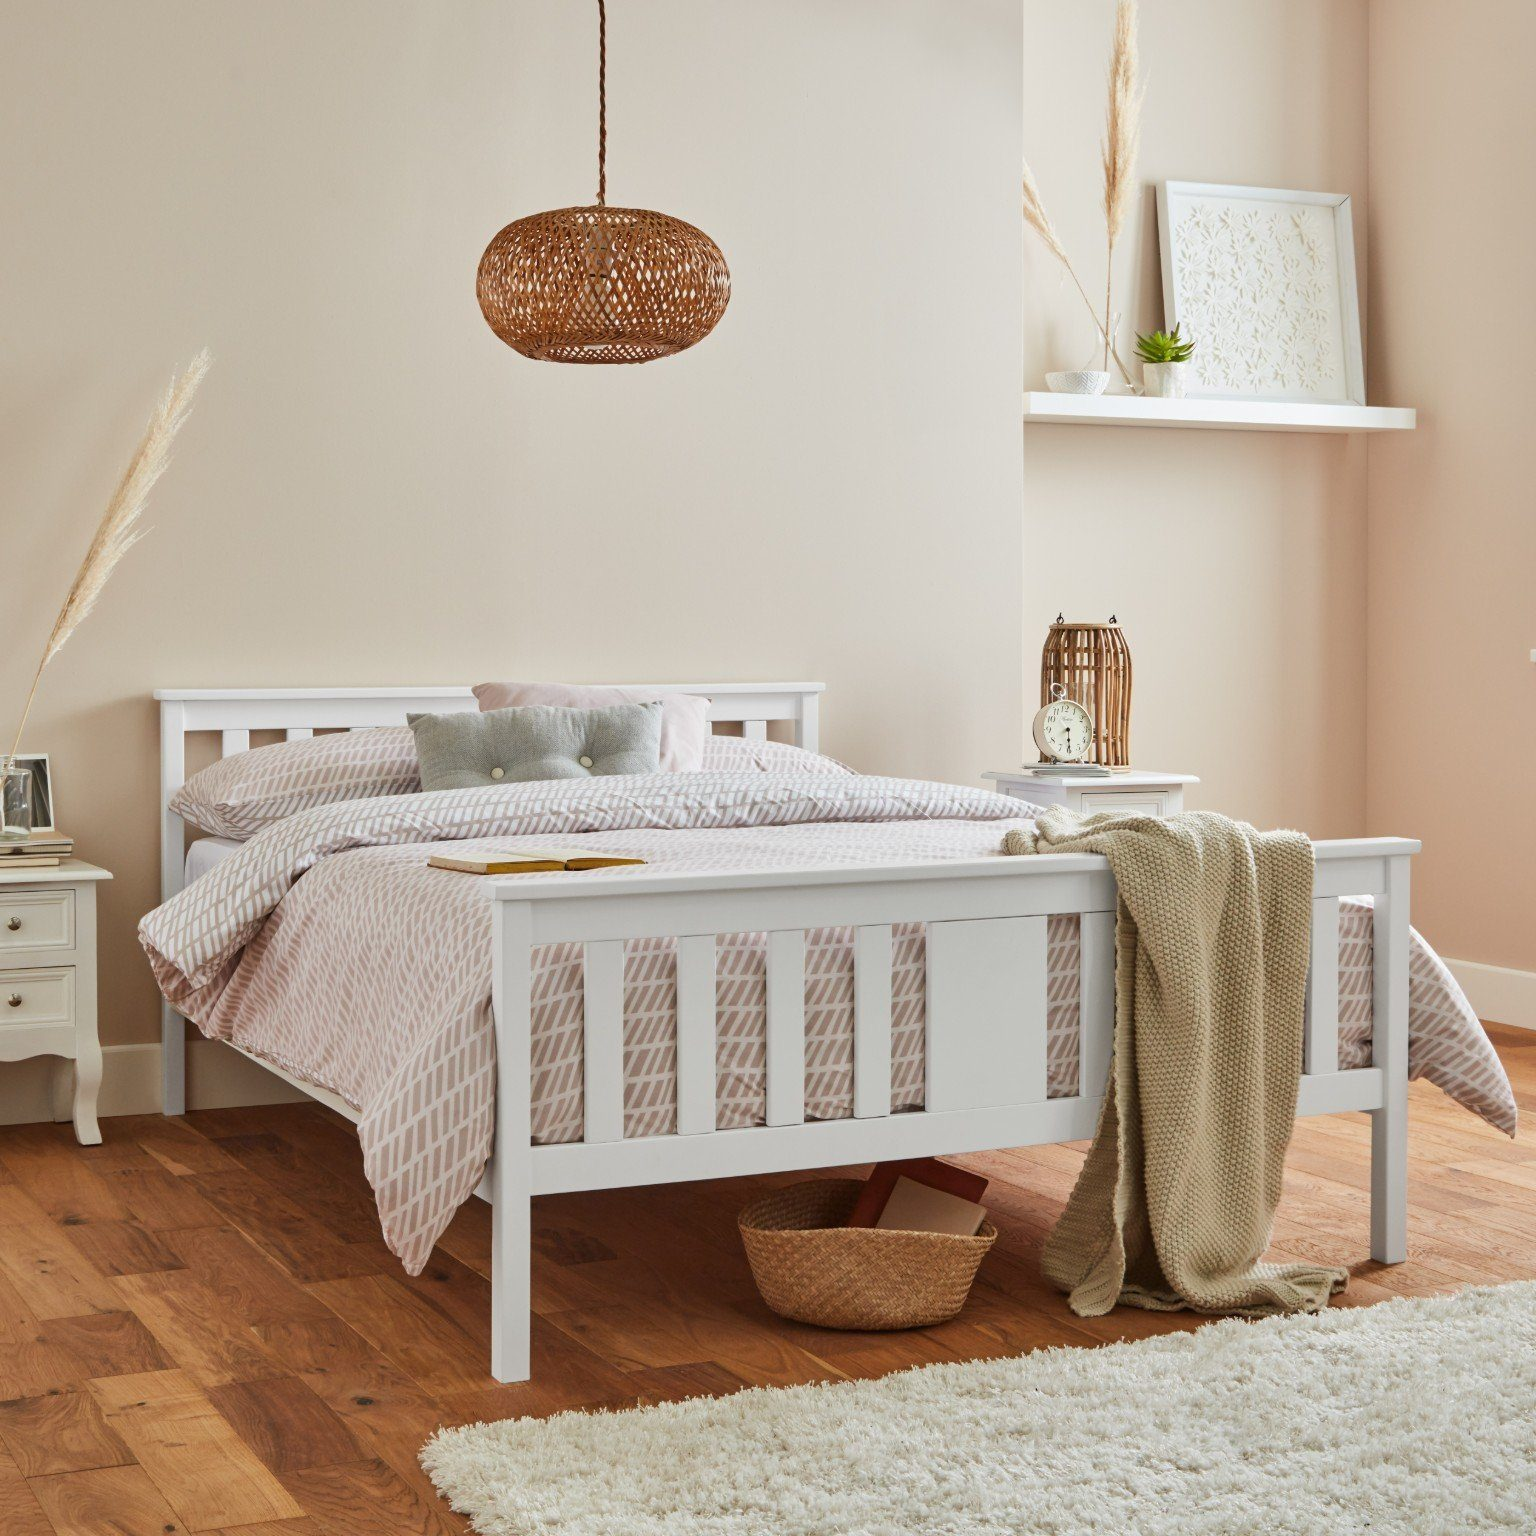 White wooden double bed frame - Laura James